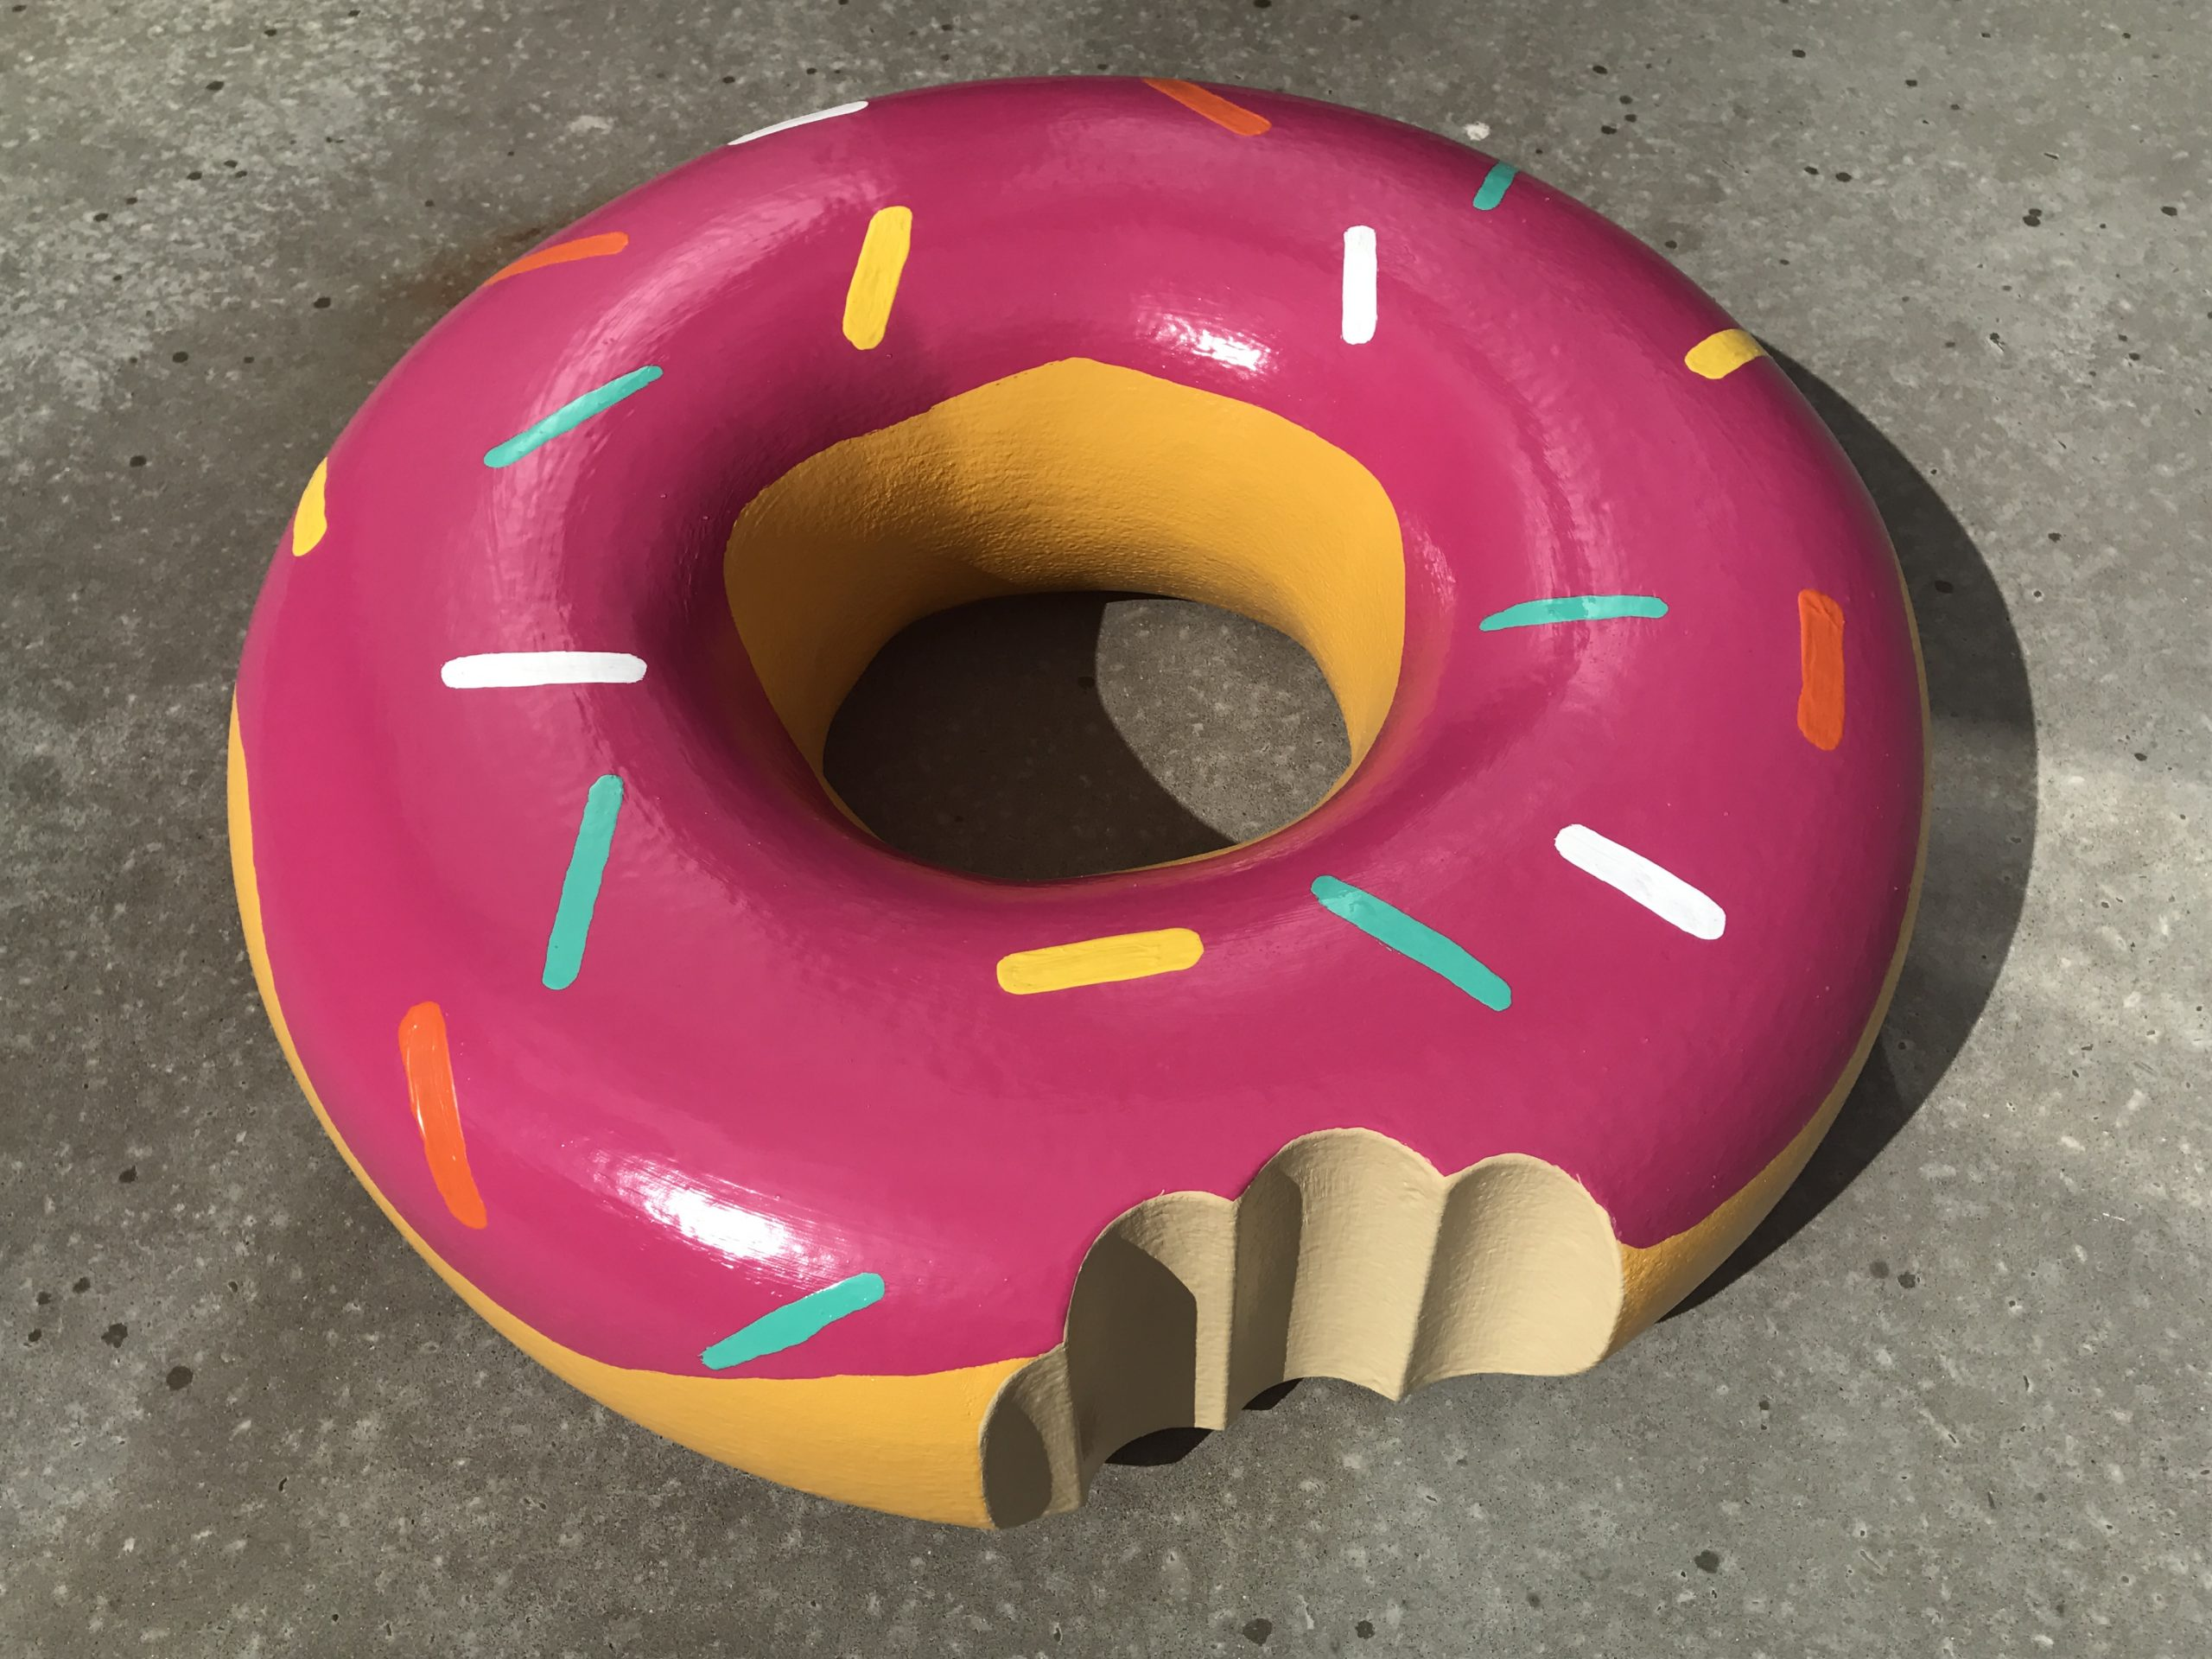 Blow-up donut